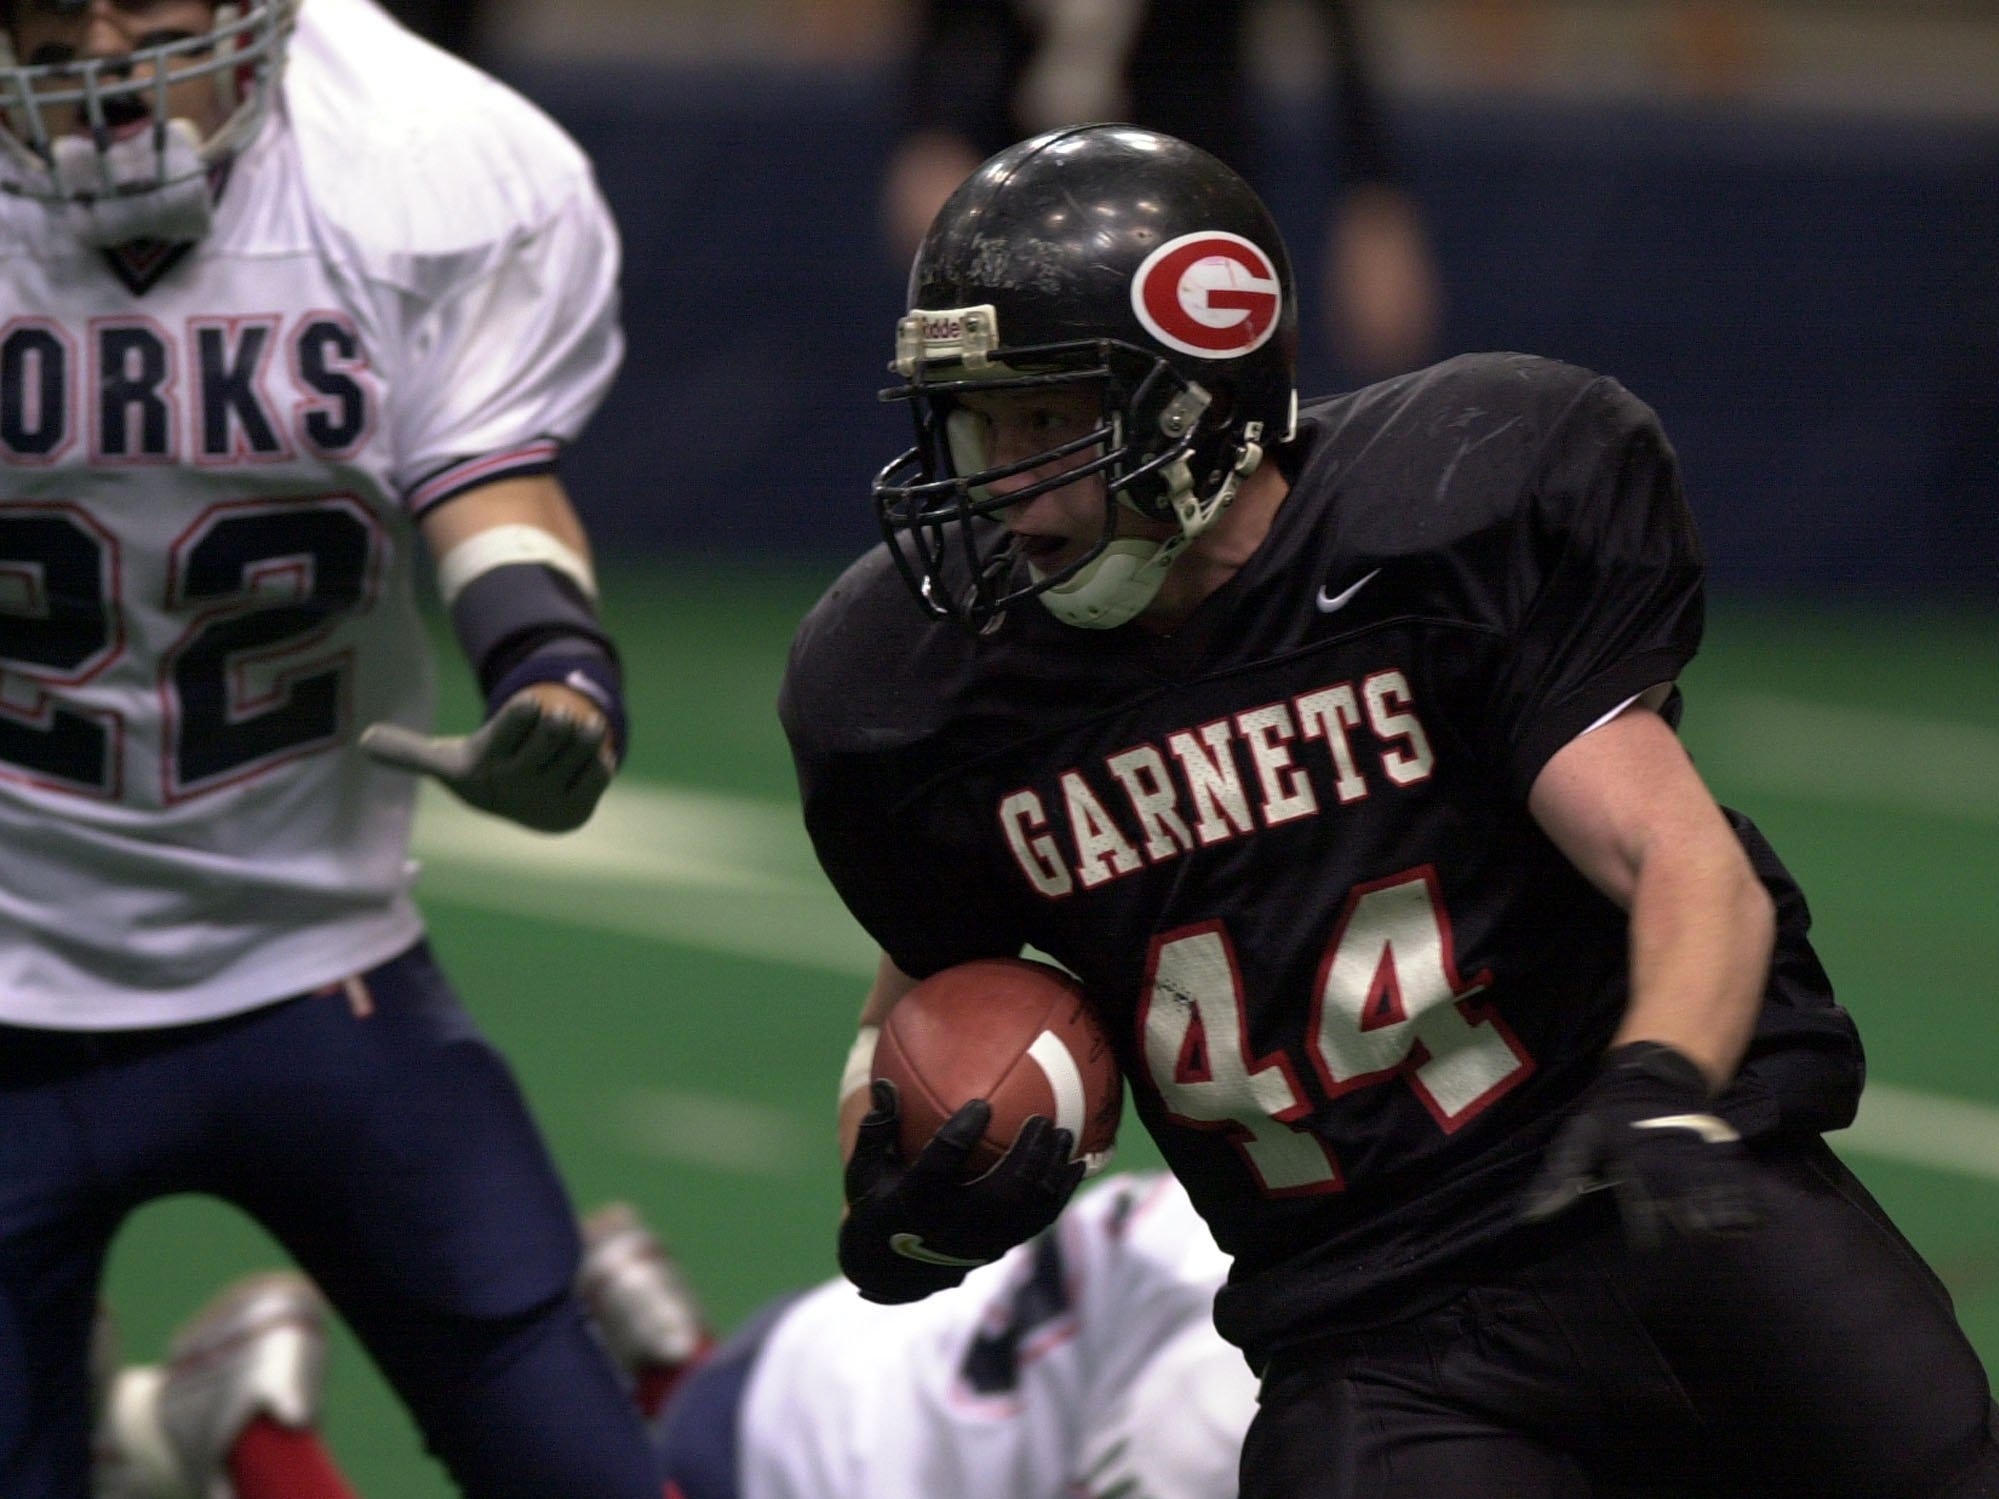 Rye's Steve Ramsey moves the ball in front of Chenango Forks Matt Stephens during the Class B state championship game between Rye High School and Chenango Forks High School, Nov. 29, 2003 at the Carrier Dome in Syracuse, N.Y.